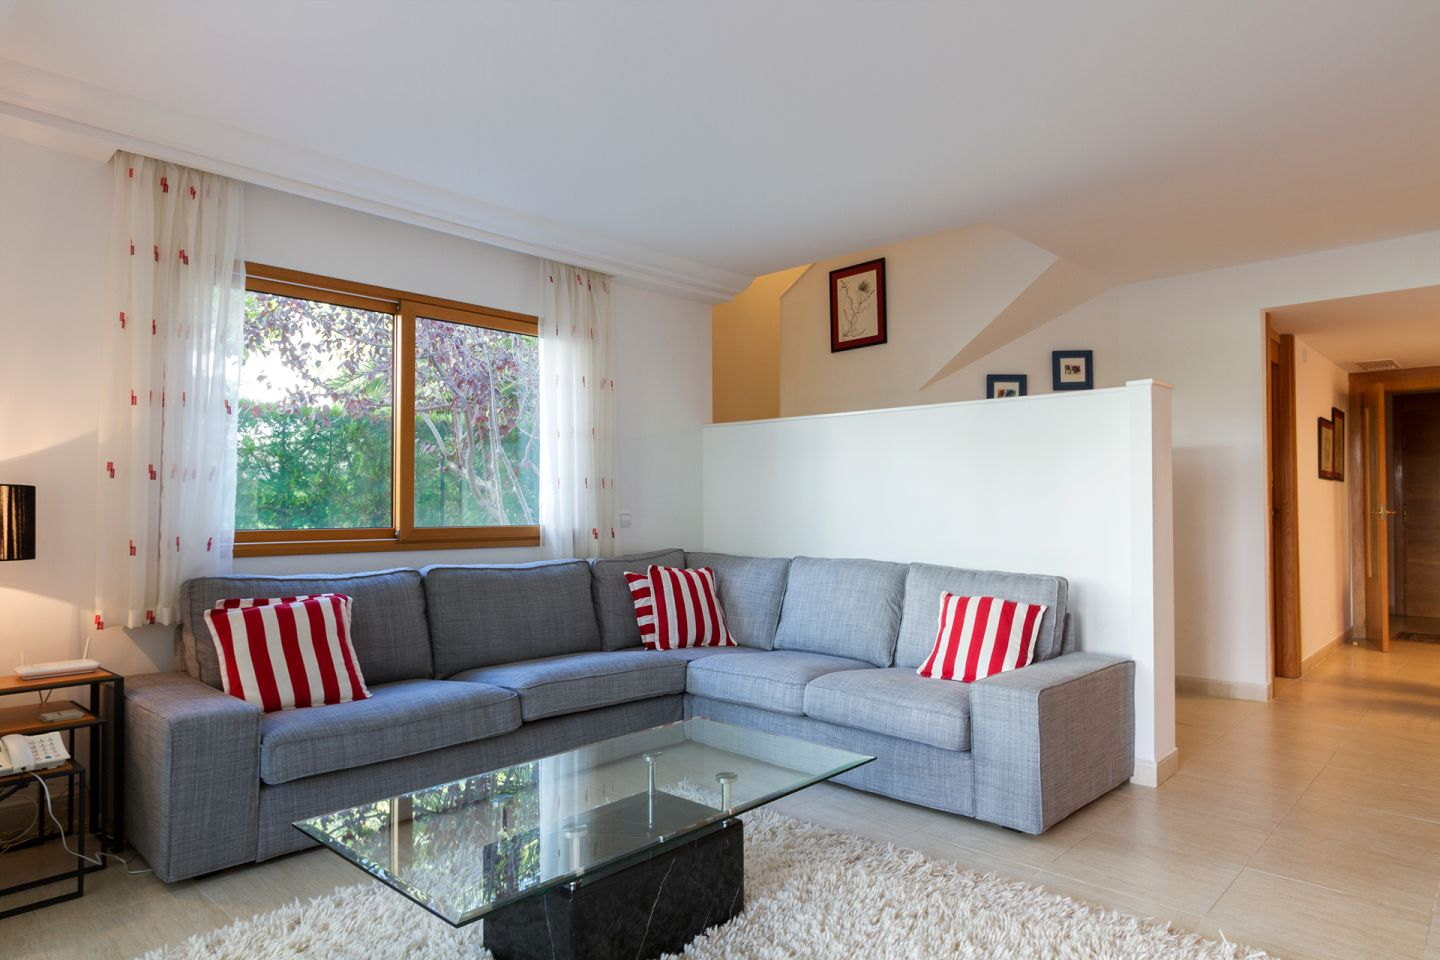 4 Bed Semidetached House for sale in PUERTO POLLENSA 5